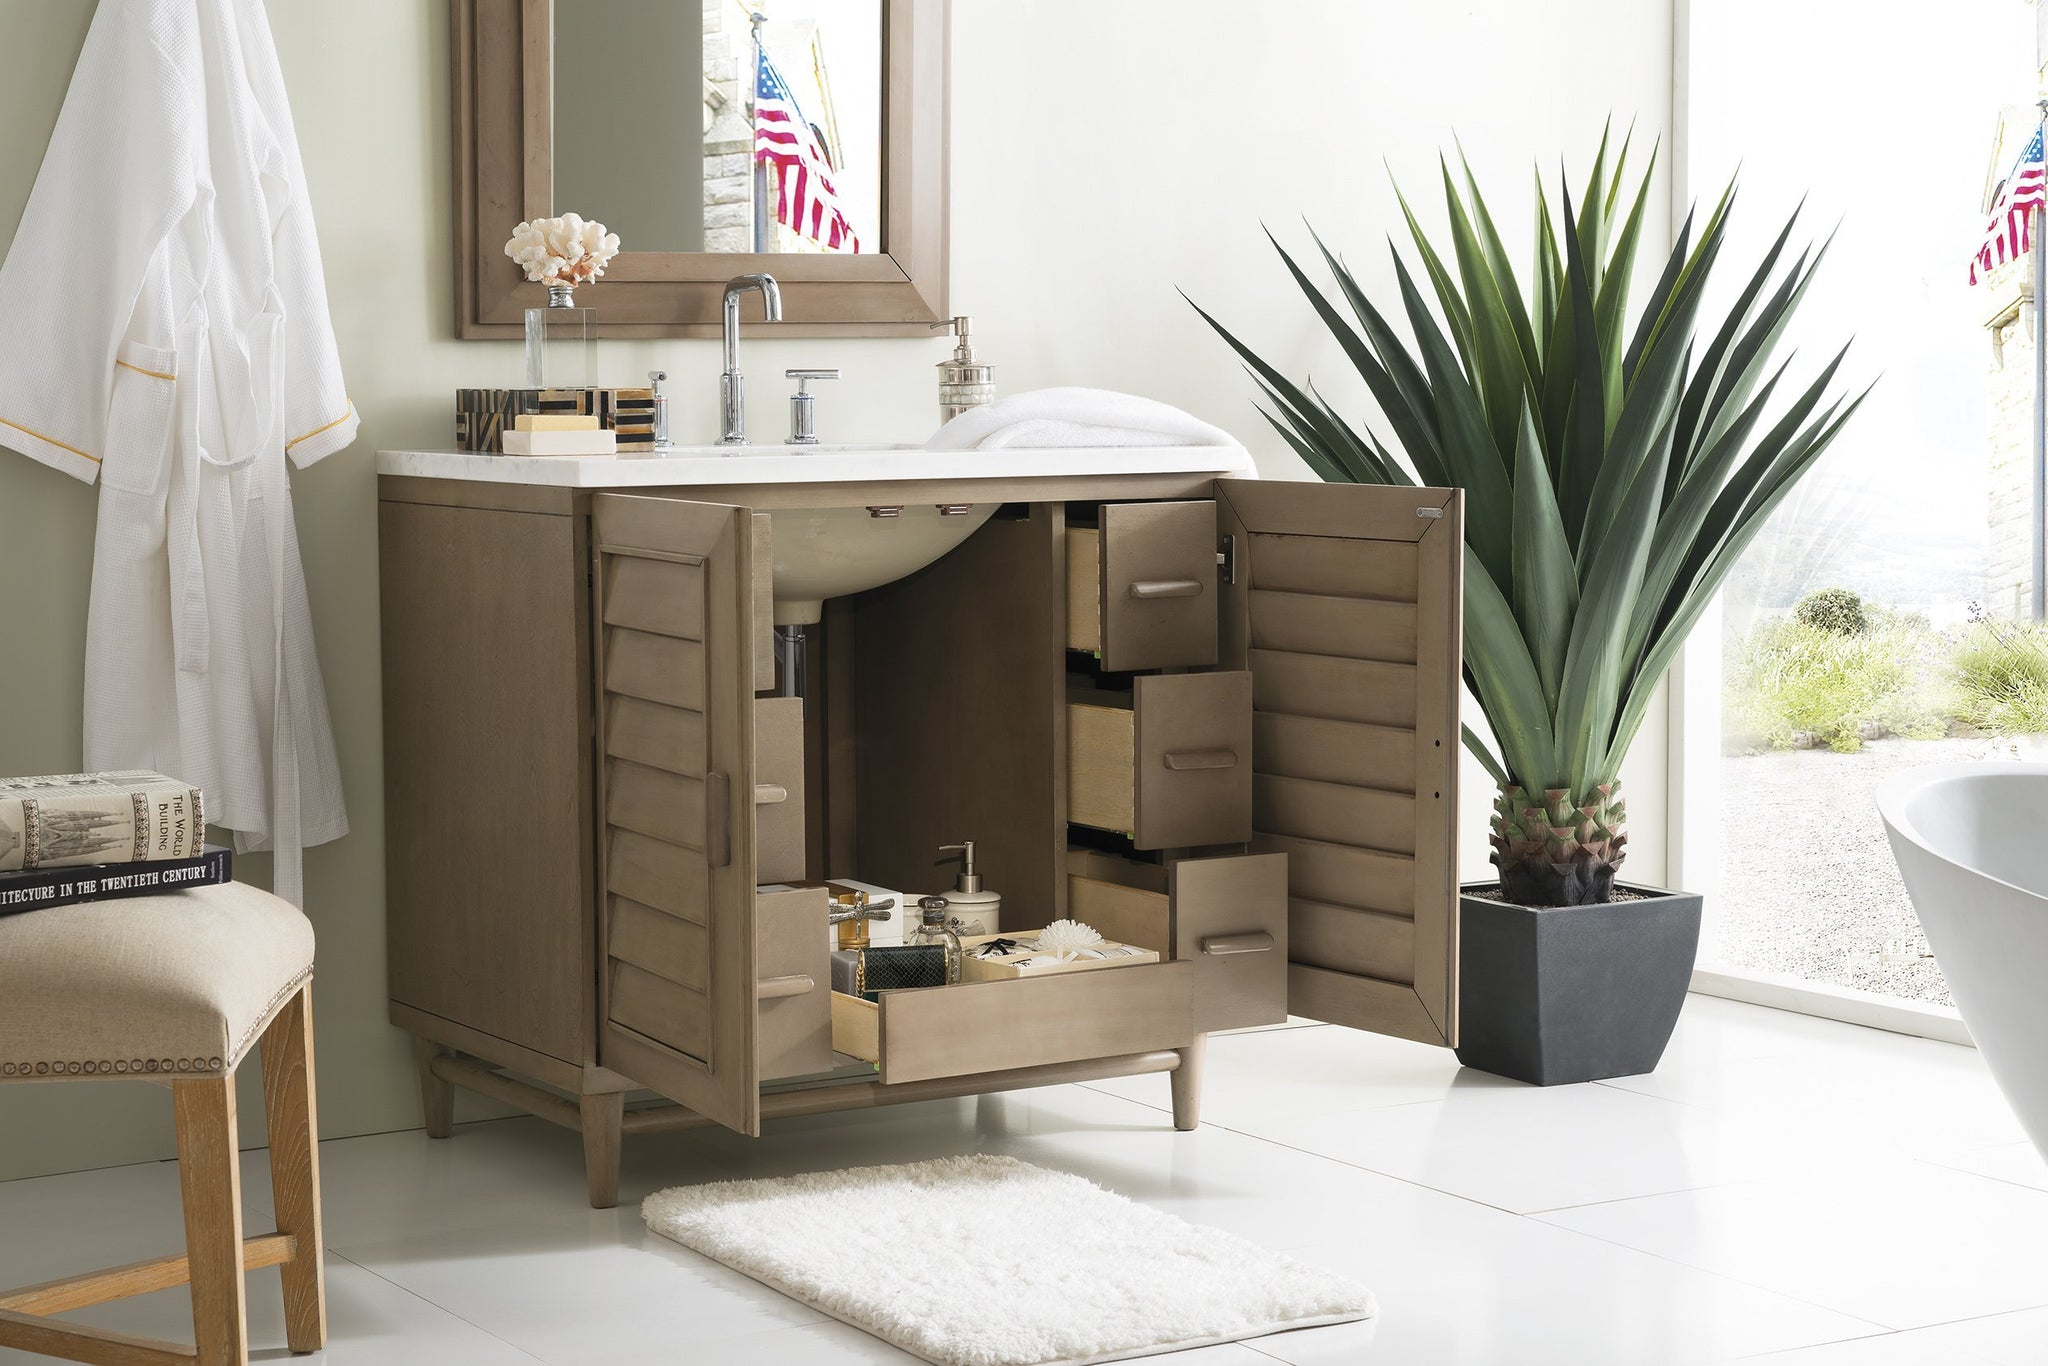 "Portland 36"" Single Bathroom Vanity Single Bathroom Vanity James Martin Vanities"